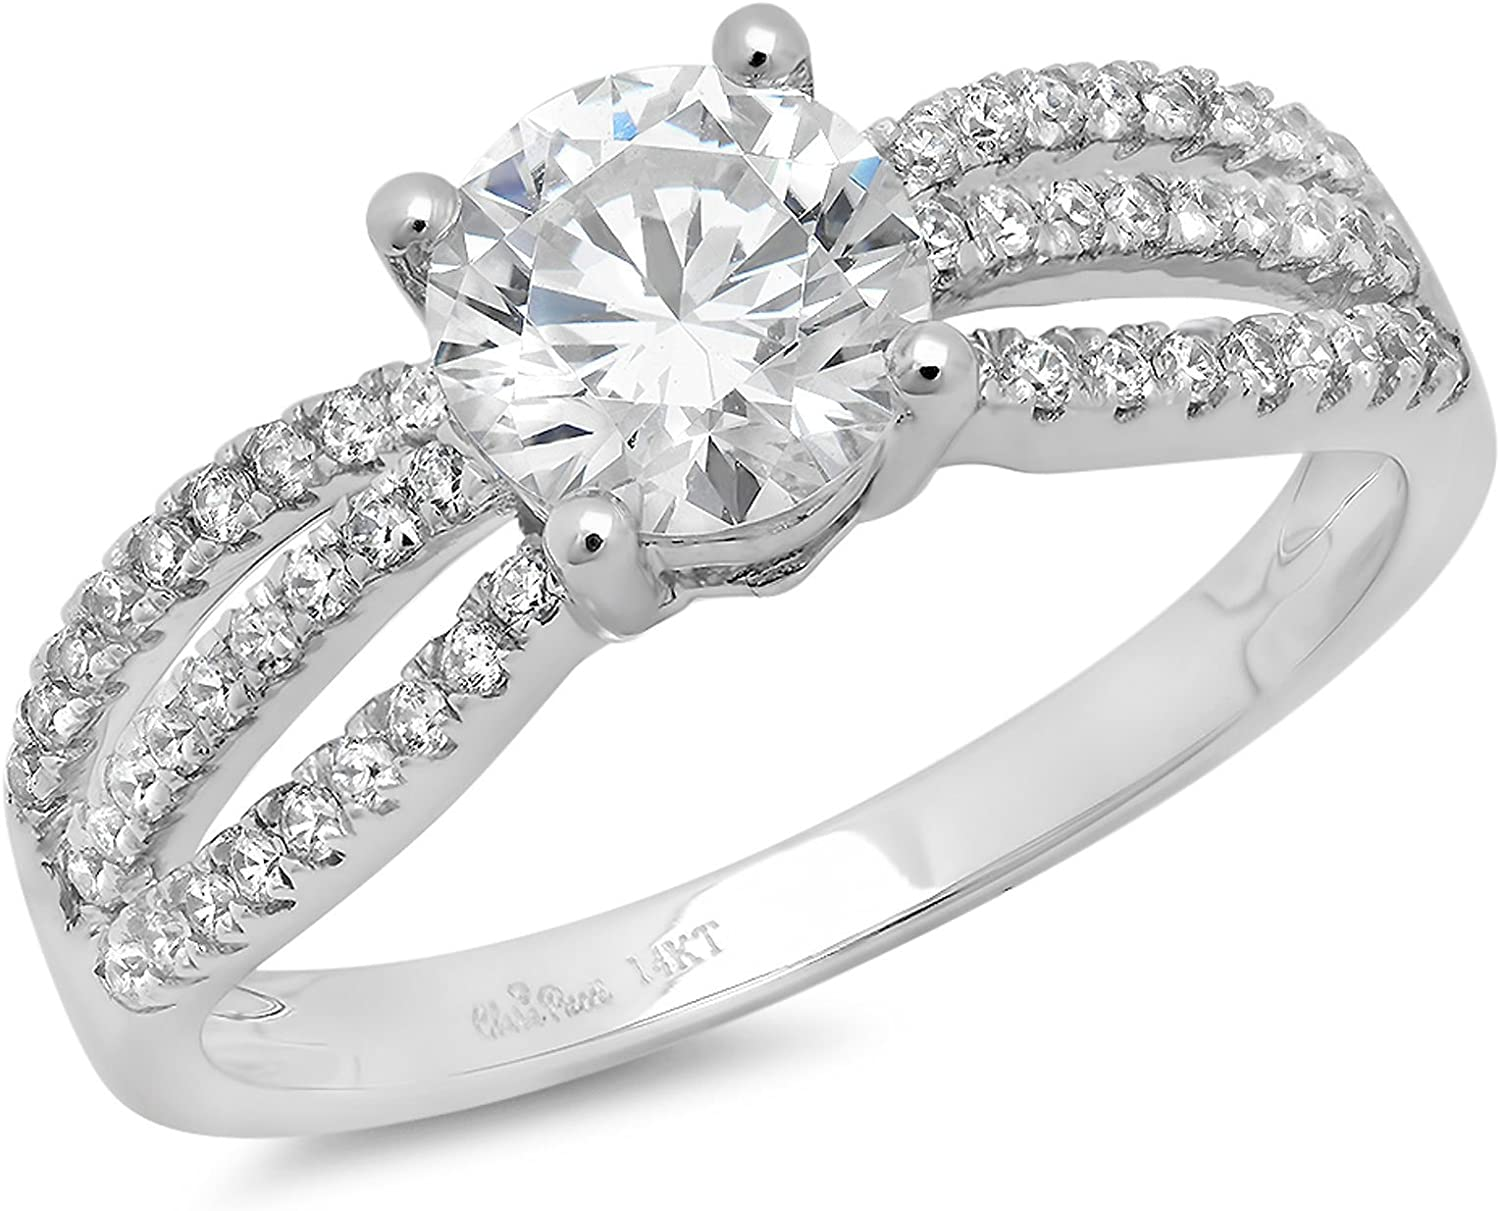 Clara Pucci 1.45 Ct Round Cut Pave Halo Engagement Bridal Anniversary Promise Ring Band 14K White Gold Gold